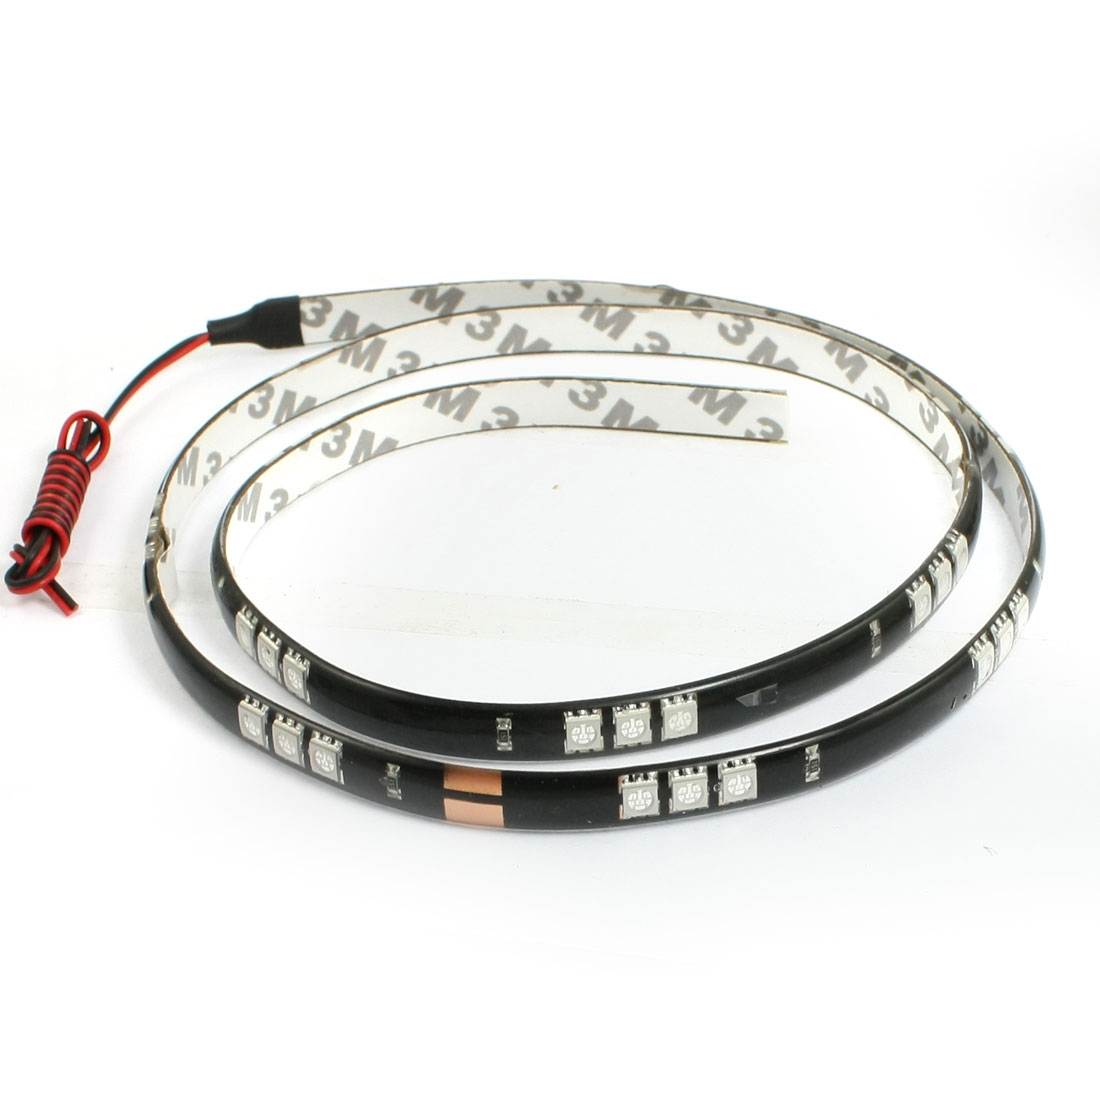 Auto Car Yellow 45 5052 SMD LED Light Flexible Lamp Strip 90cm